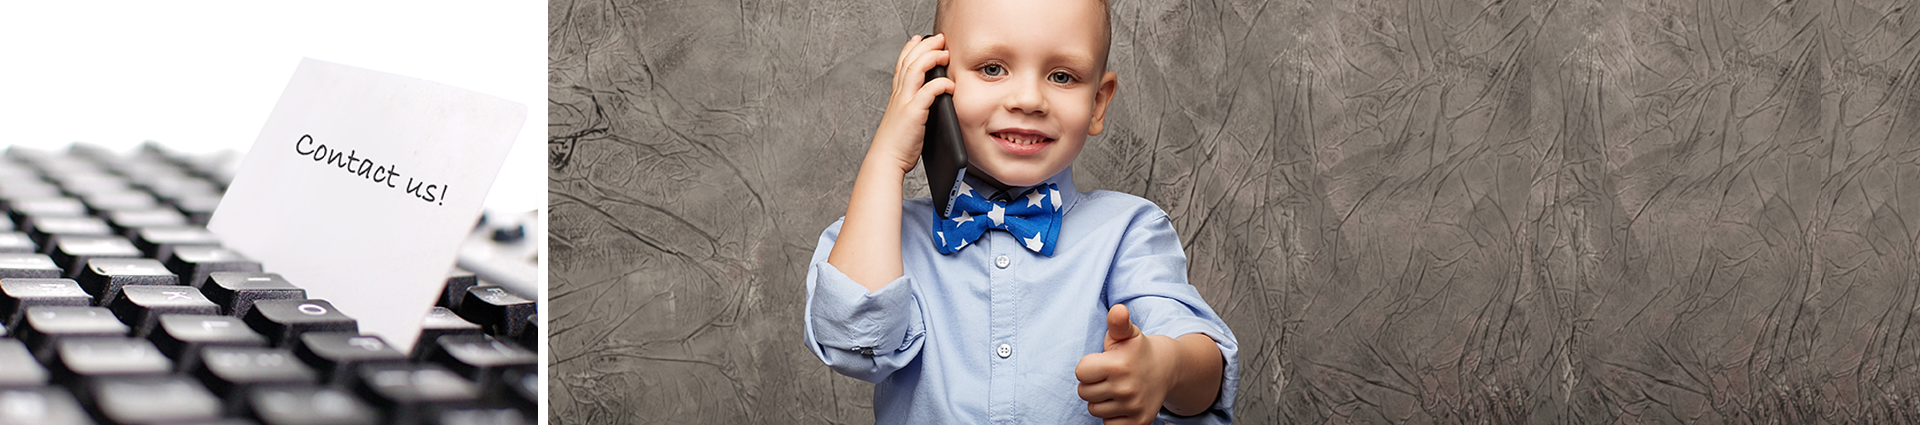 Boy on Telephone